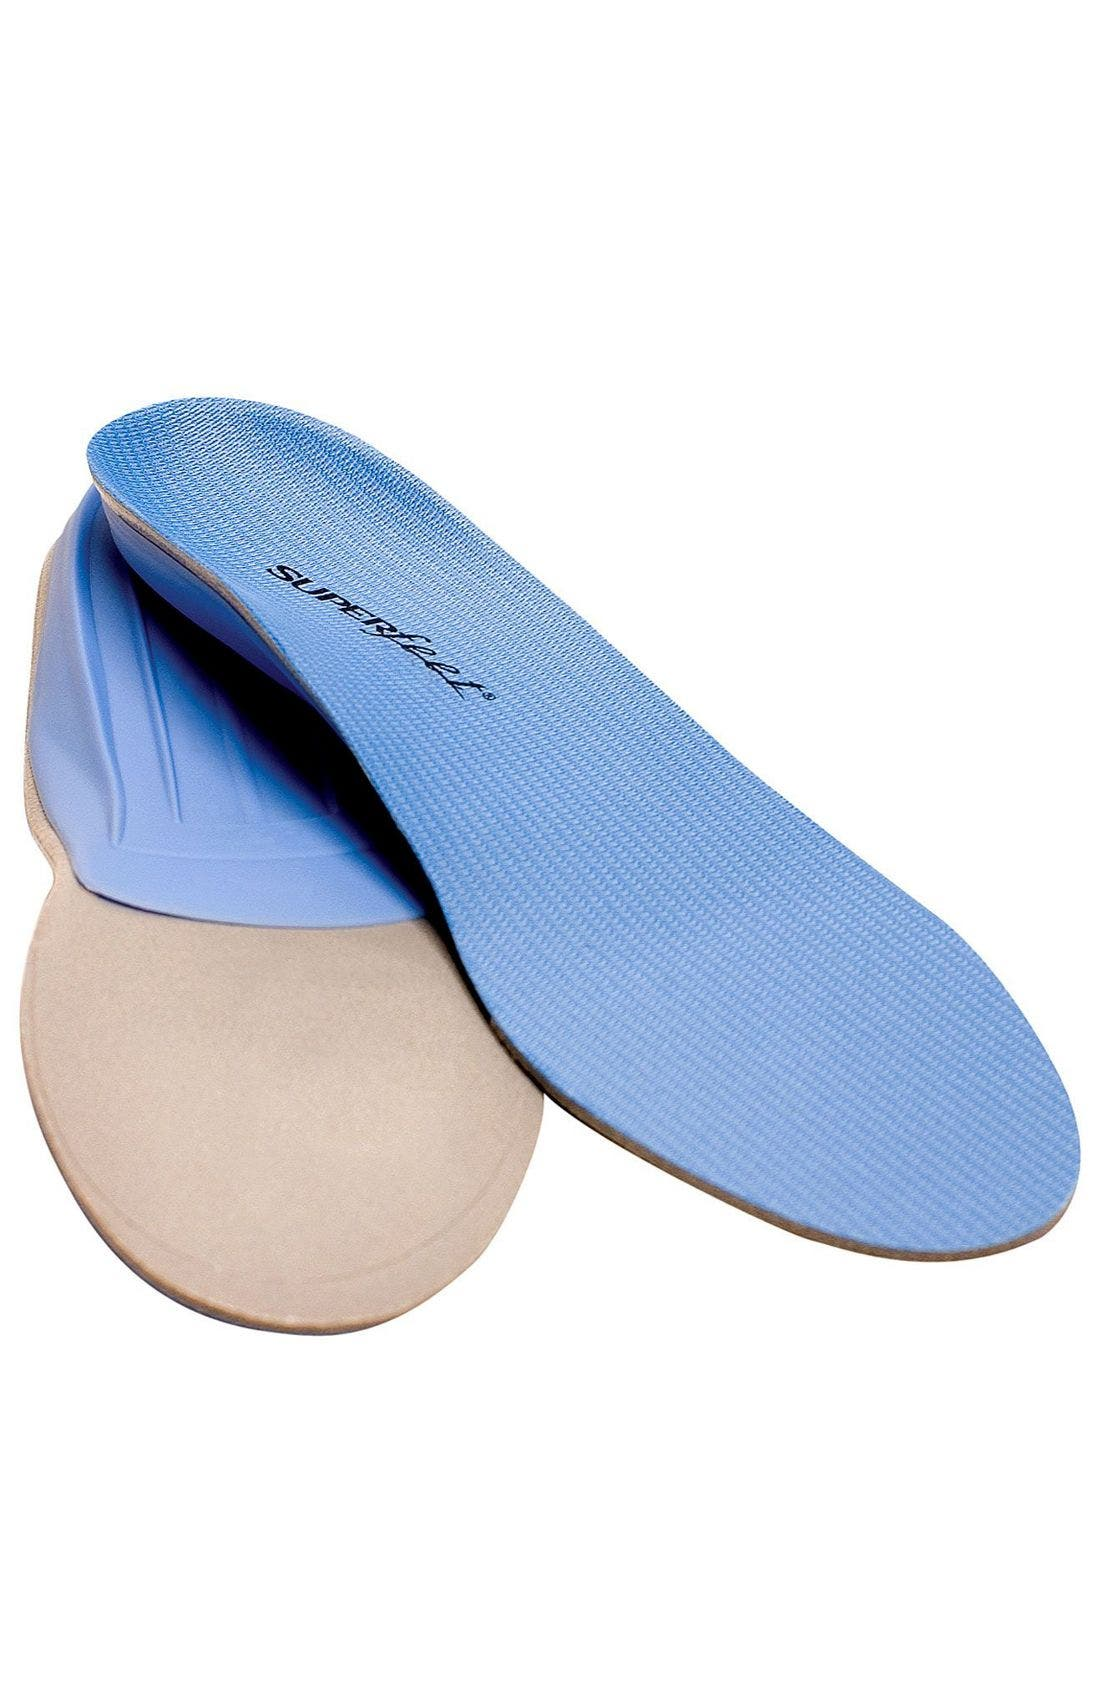 Alternate Image 1 Selected - Superfeet 'Active Blue' Insoles (Women)